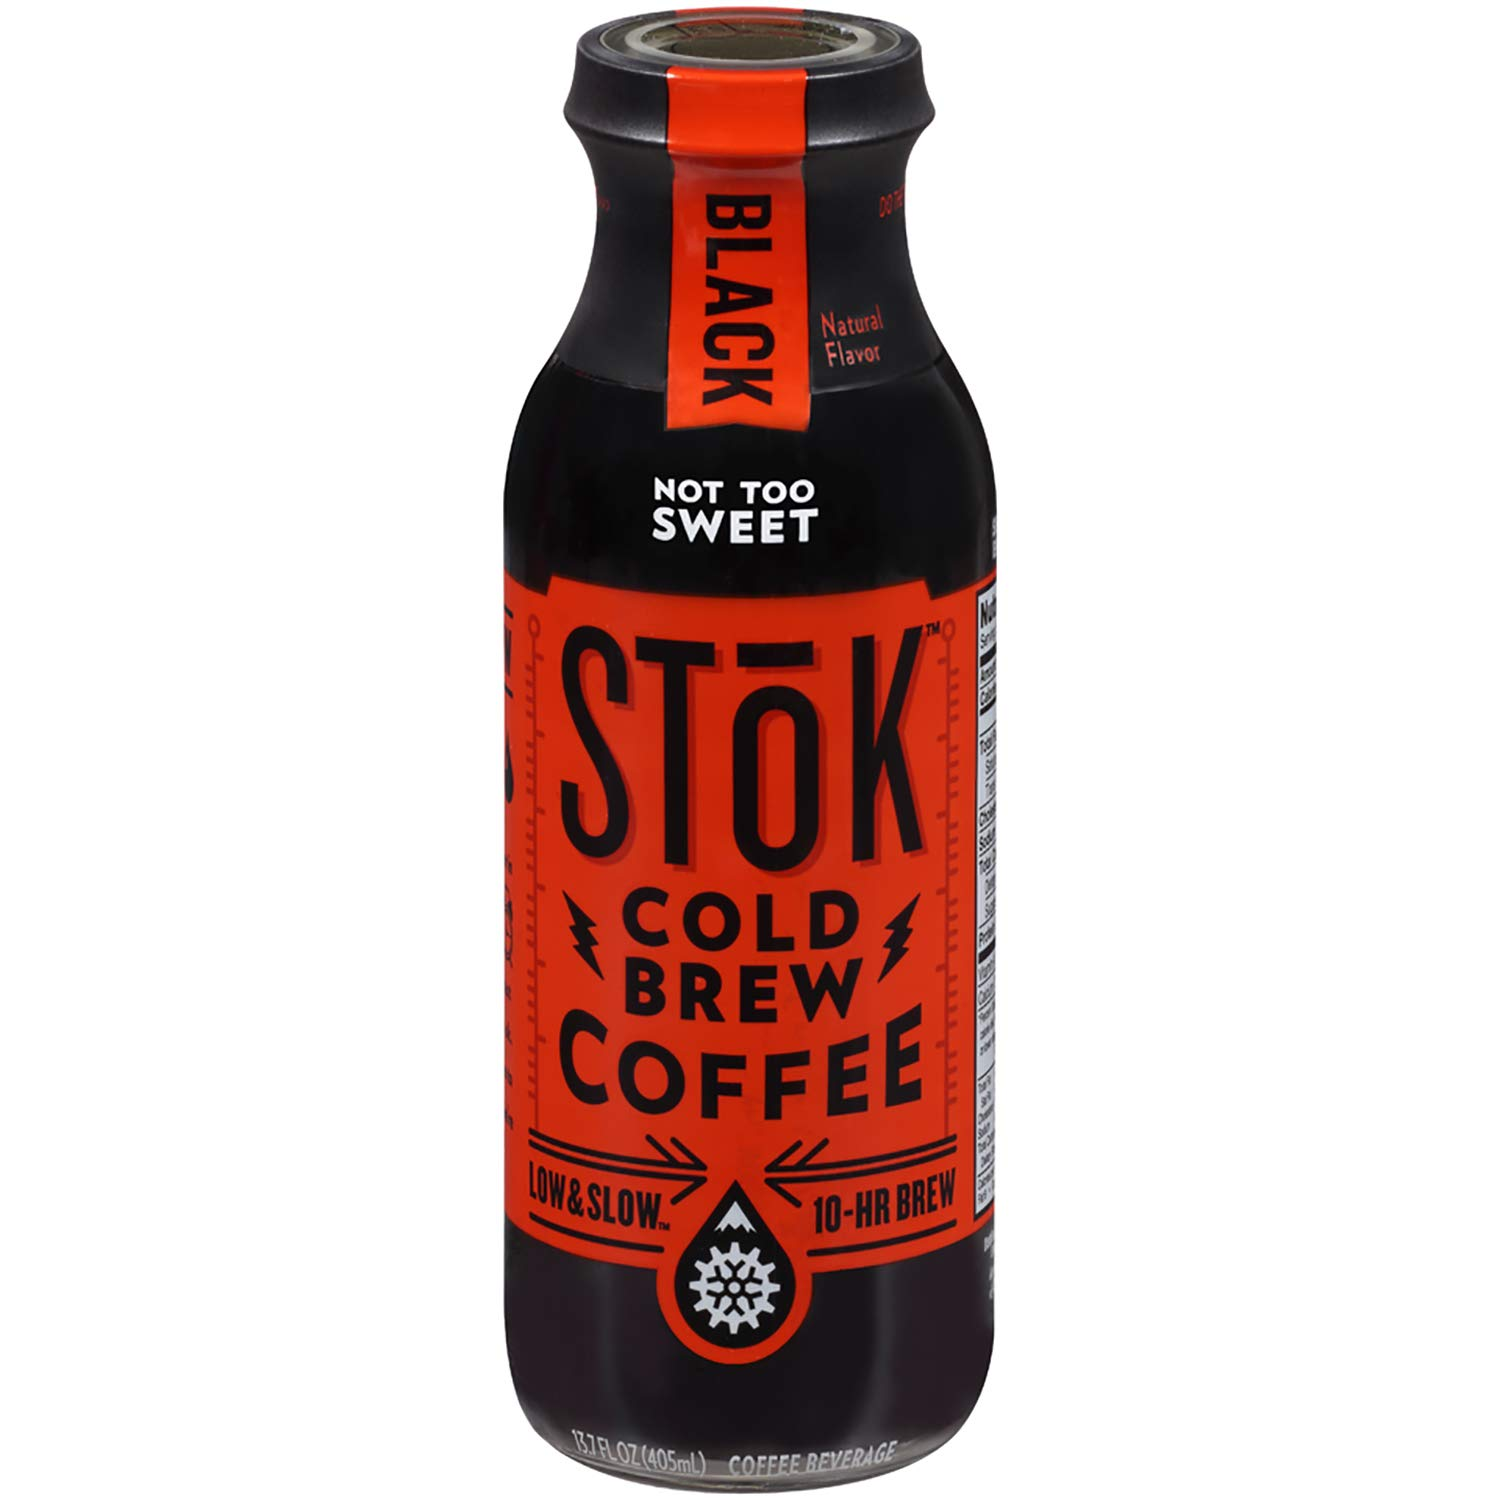 SToK Cold-Brew Iced Coffee, Black Not Too Sweet, 13.7 Ounce Bottle , 10-Hour Brew Cold-Brew Arabica-Based Coffee, Lightly Sweetened, Ready-to-Drink Coffee to Pour over Ice or Drink Hot by SToK